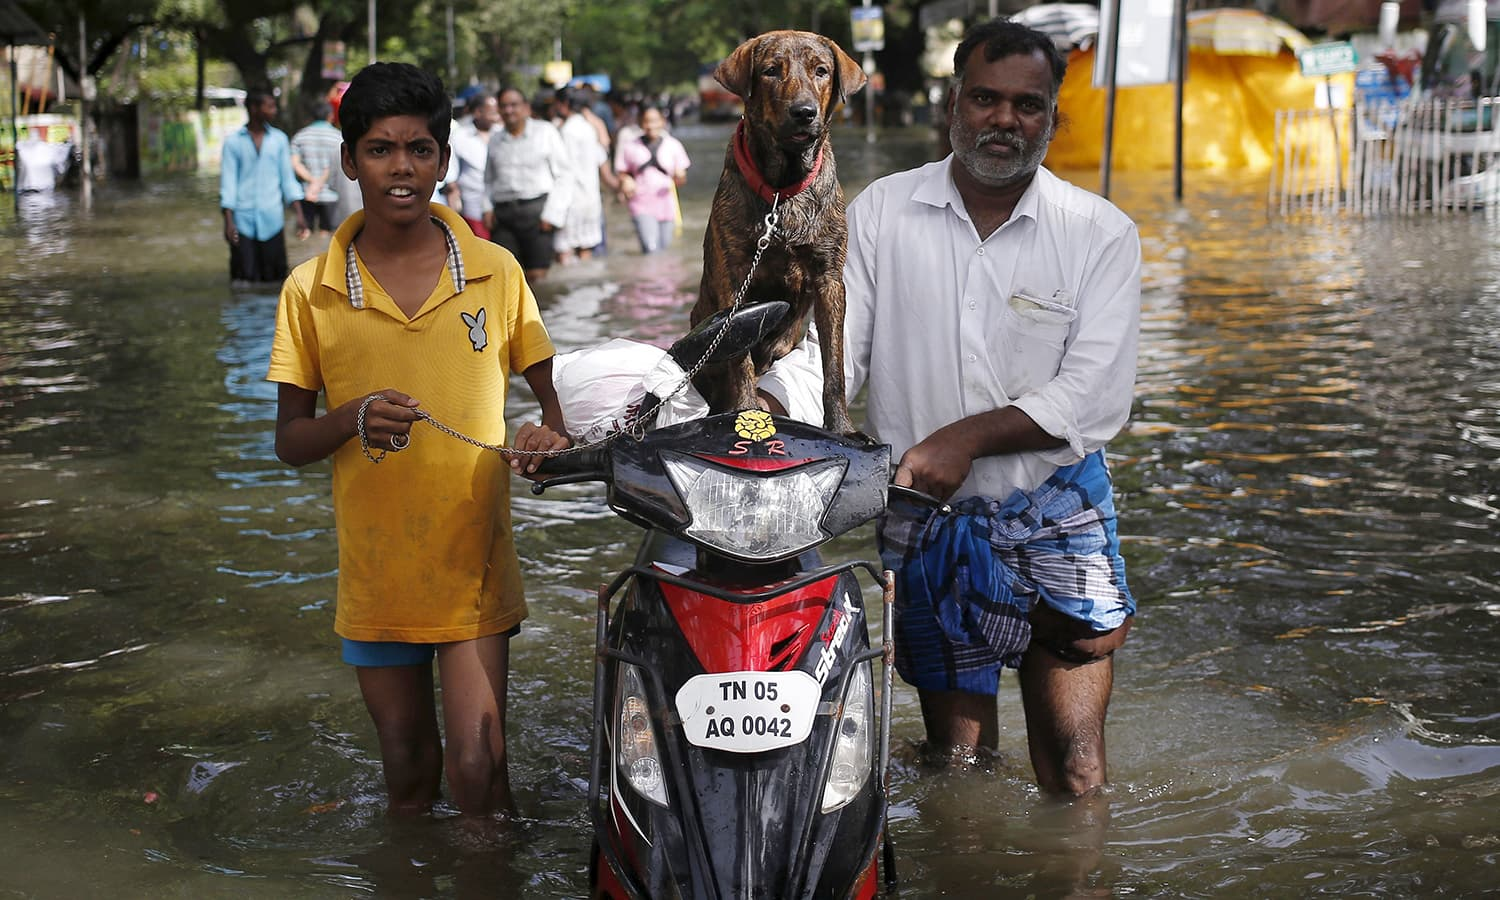 Residents along with a dog evacuate a locality as they wade through a flooded street in Chennai, India, December 3, 2015. — Reuters